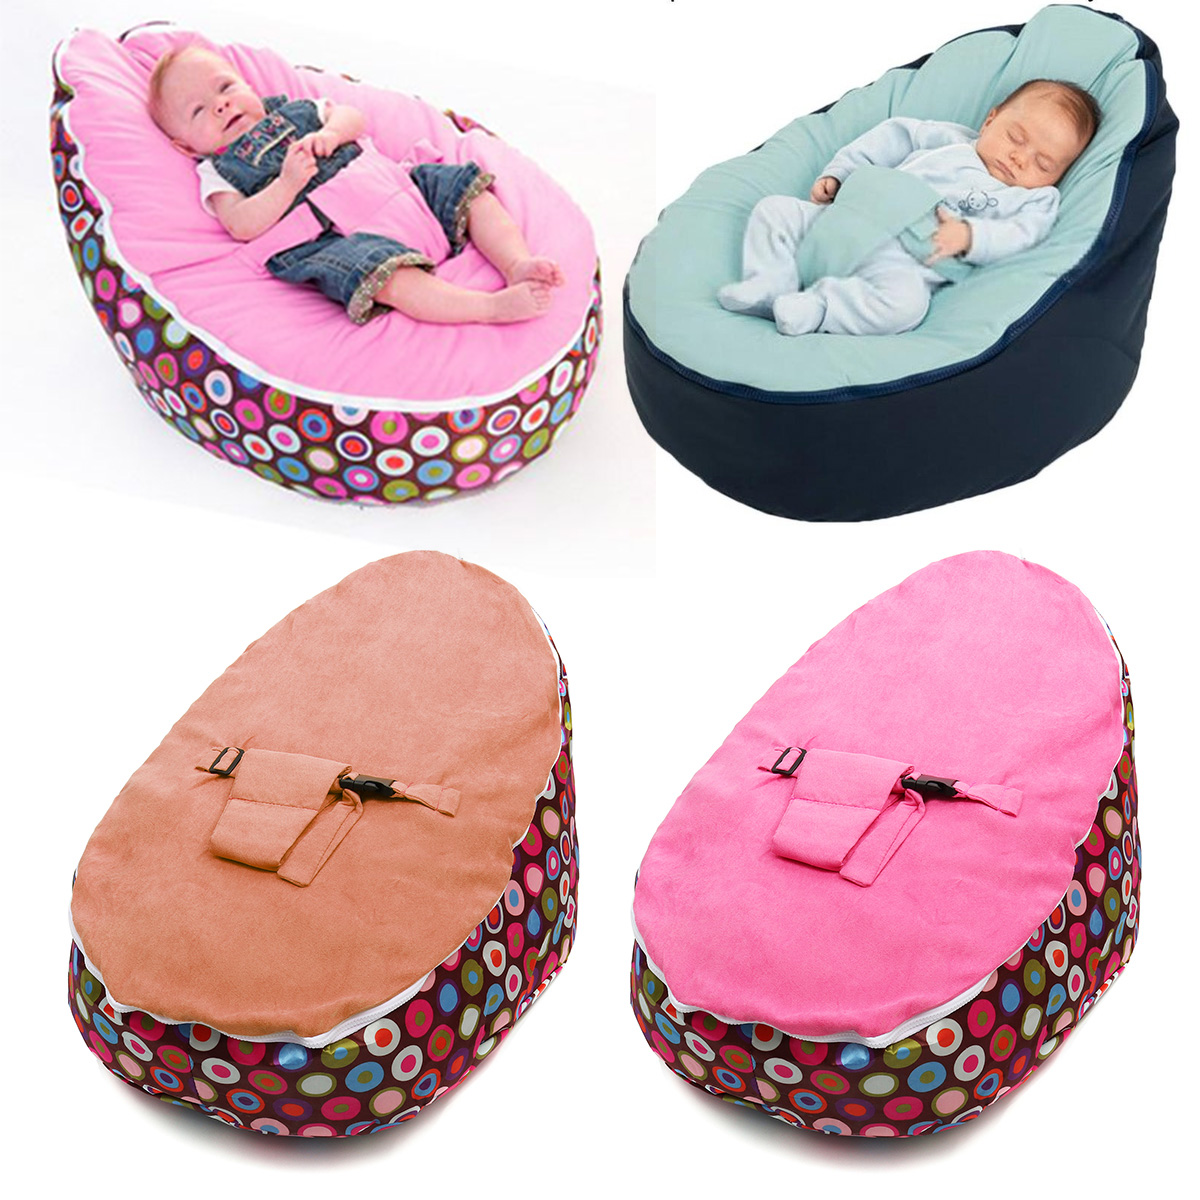 Wondrous Details About Baby Bean Bags Bed Infant Toddler Chair Seat Bouncer Beanbag Without Filling Gmtry Best Dining Table And Chair Ideas Images Gmtryco